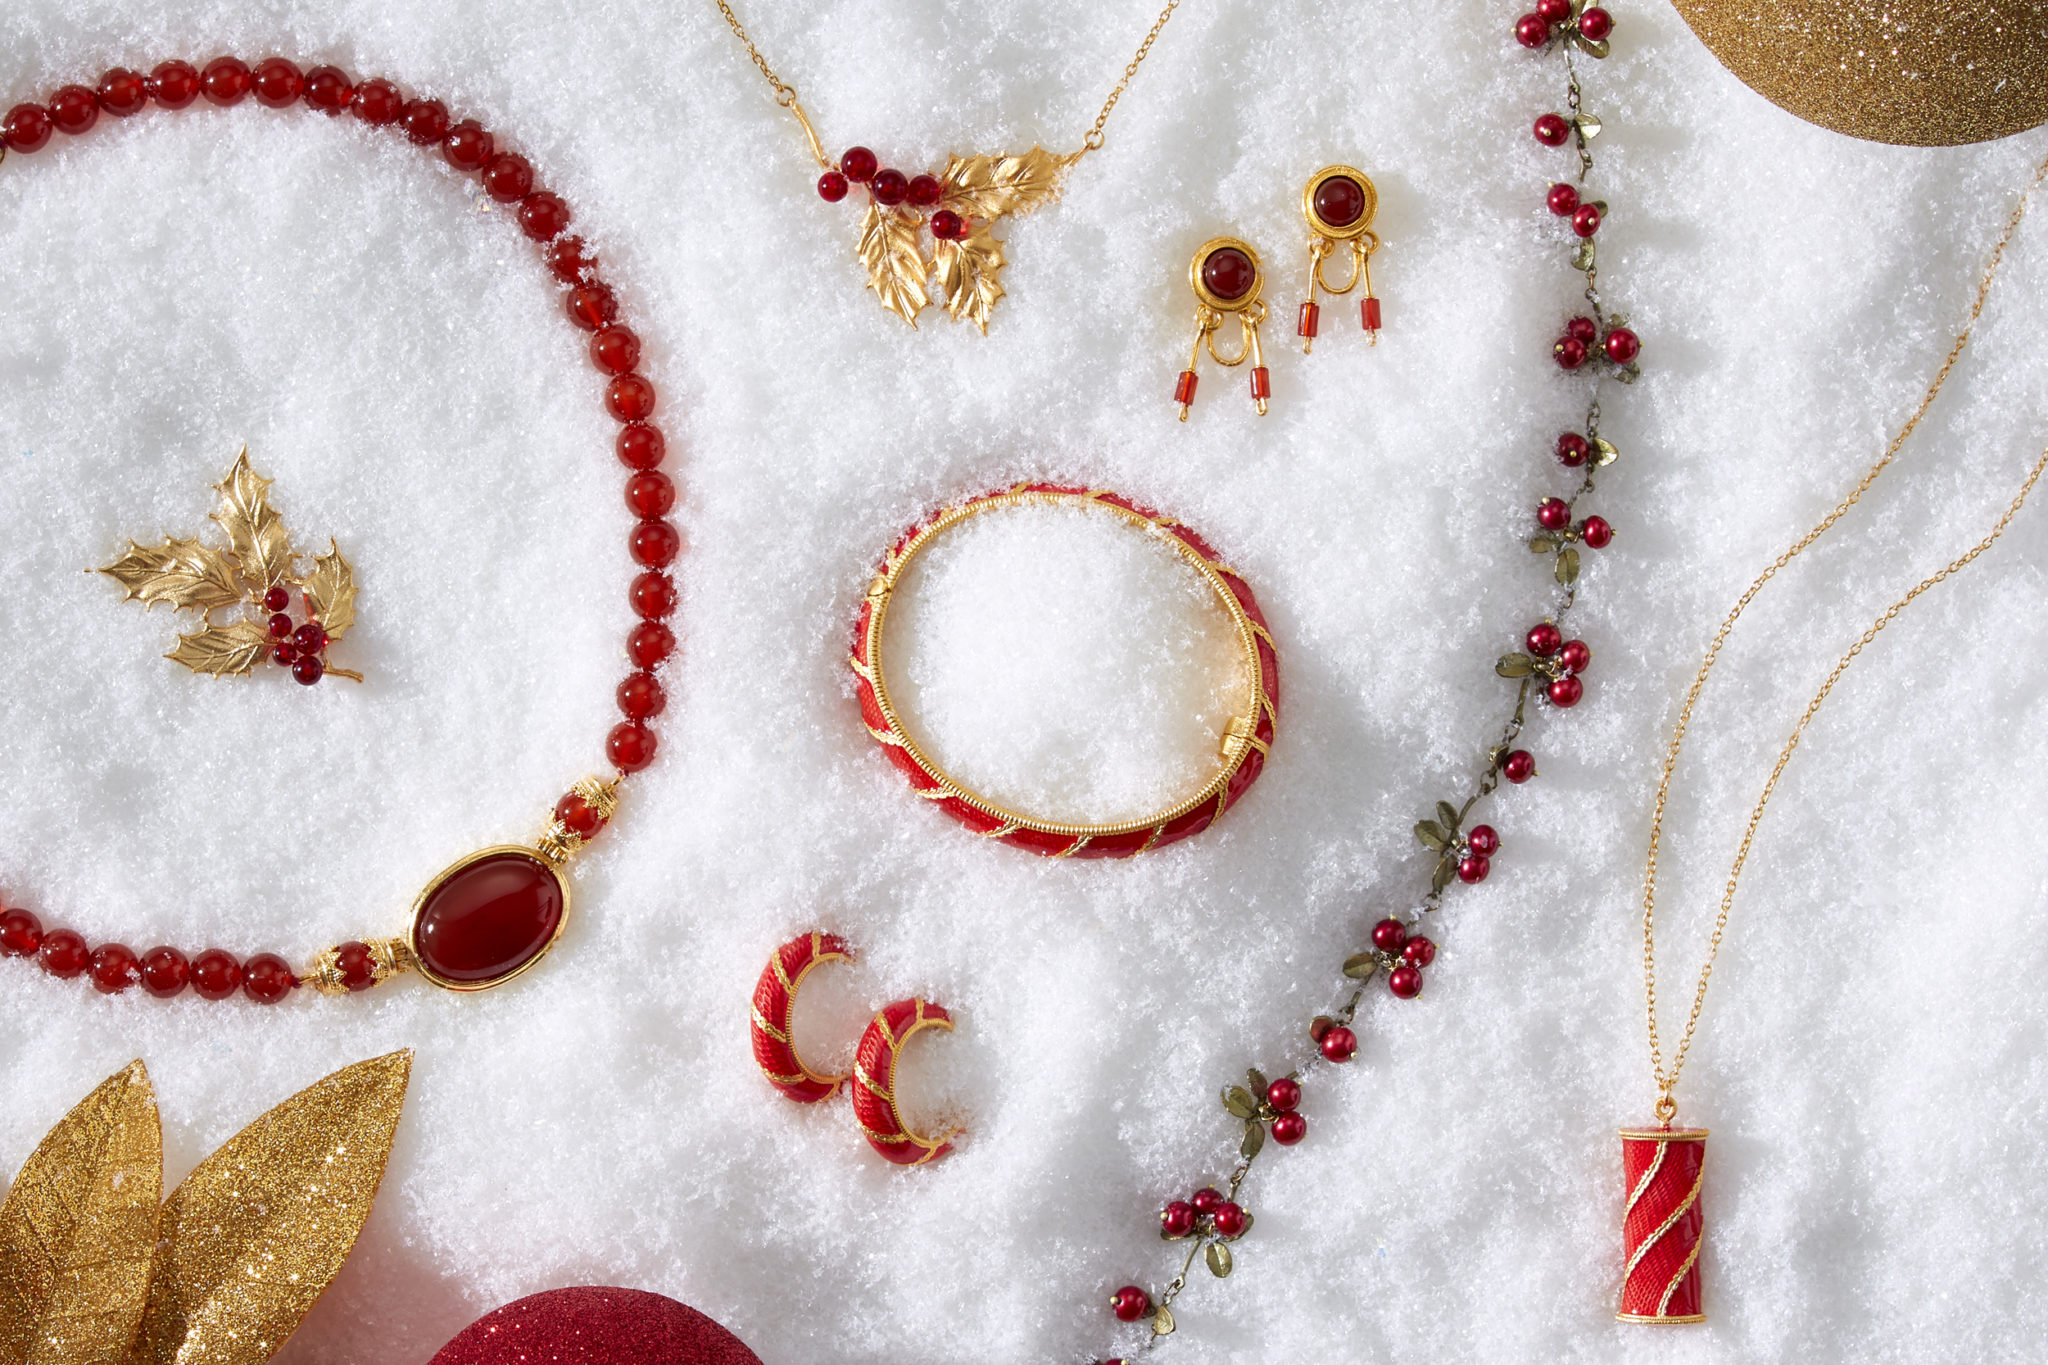 marketing still life photograph of red, gold, and garnet jewelry including necklaces, earrings, a bracelet, and a pin on snow